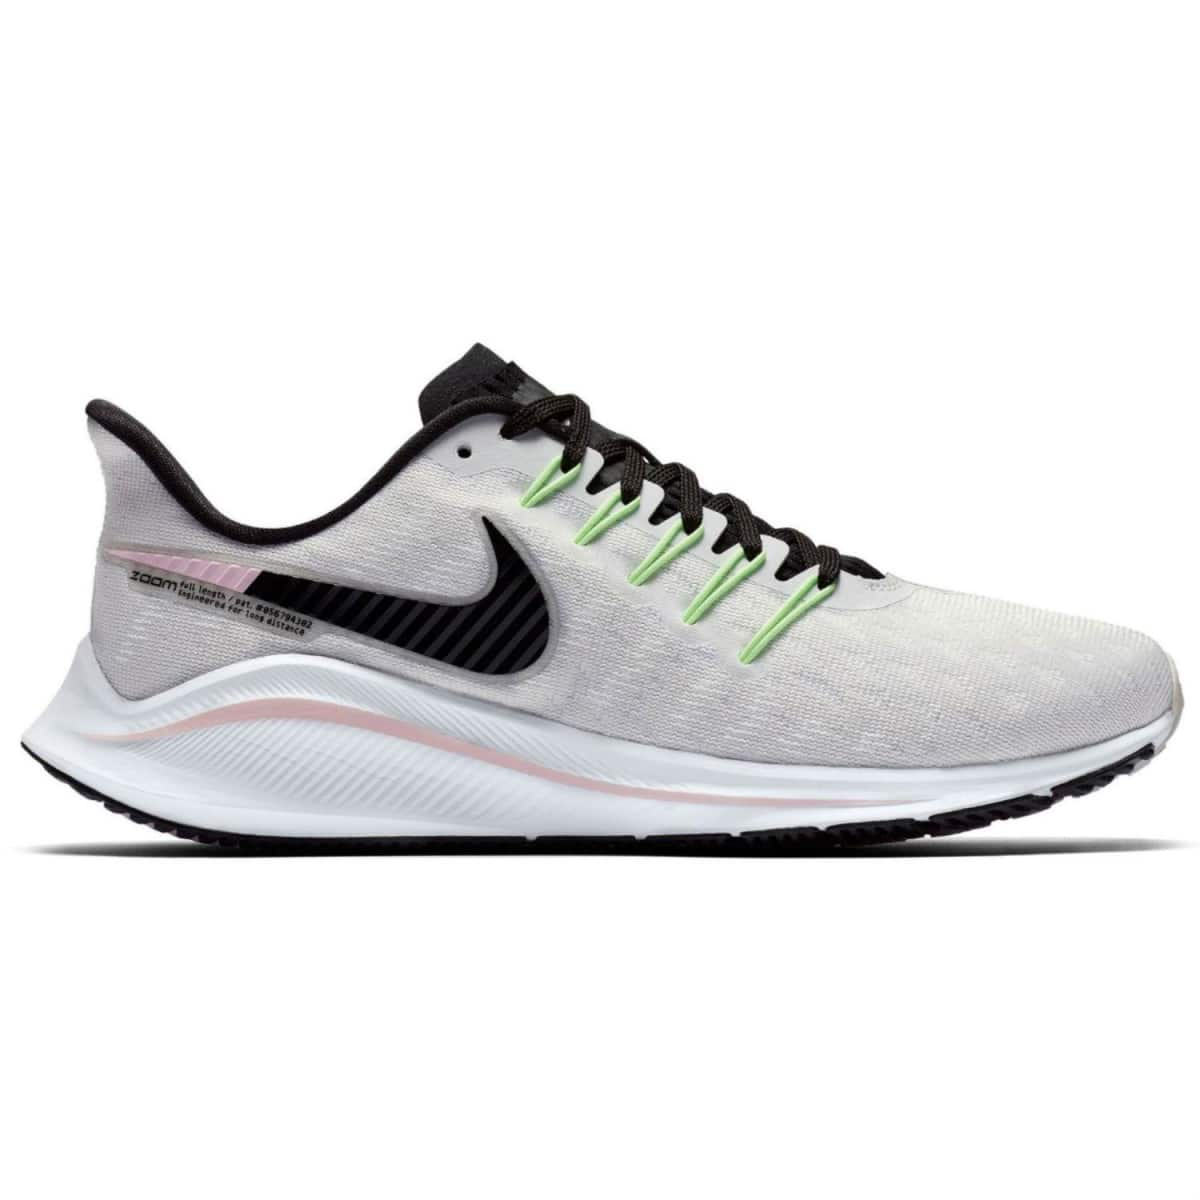 a4b0f61c7f1c4 Nike Shoes Nike Womens Zoom Condition Tr Color PinkWhite